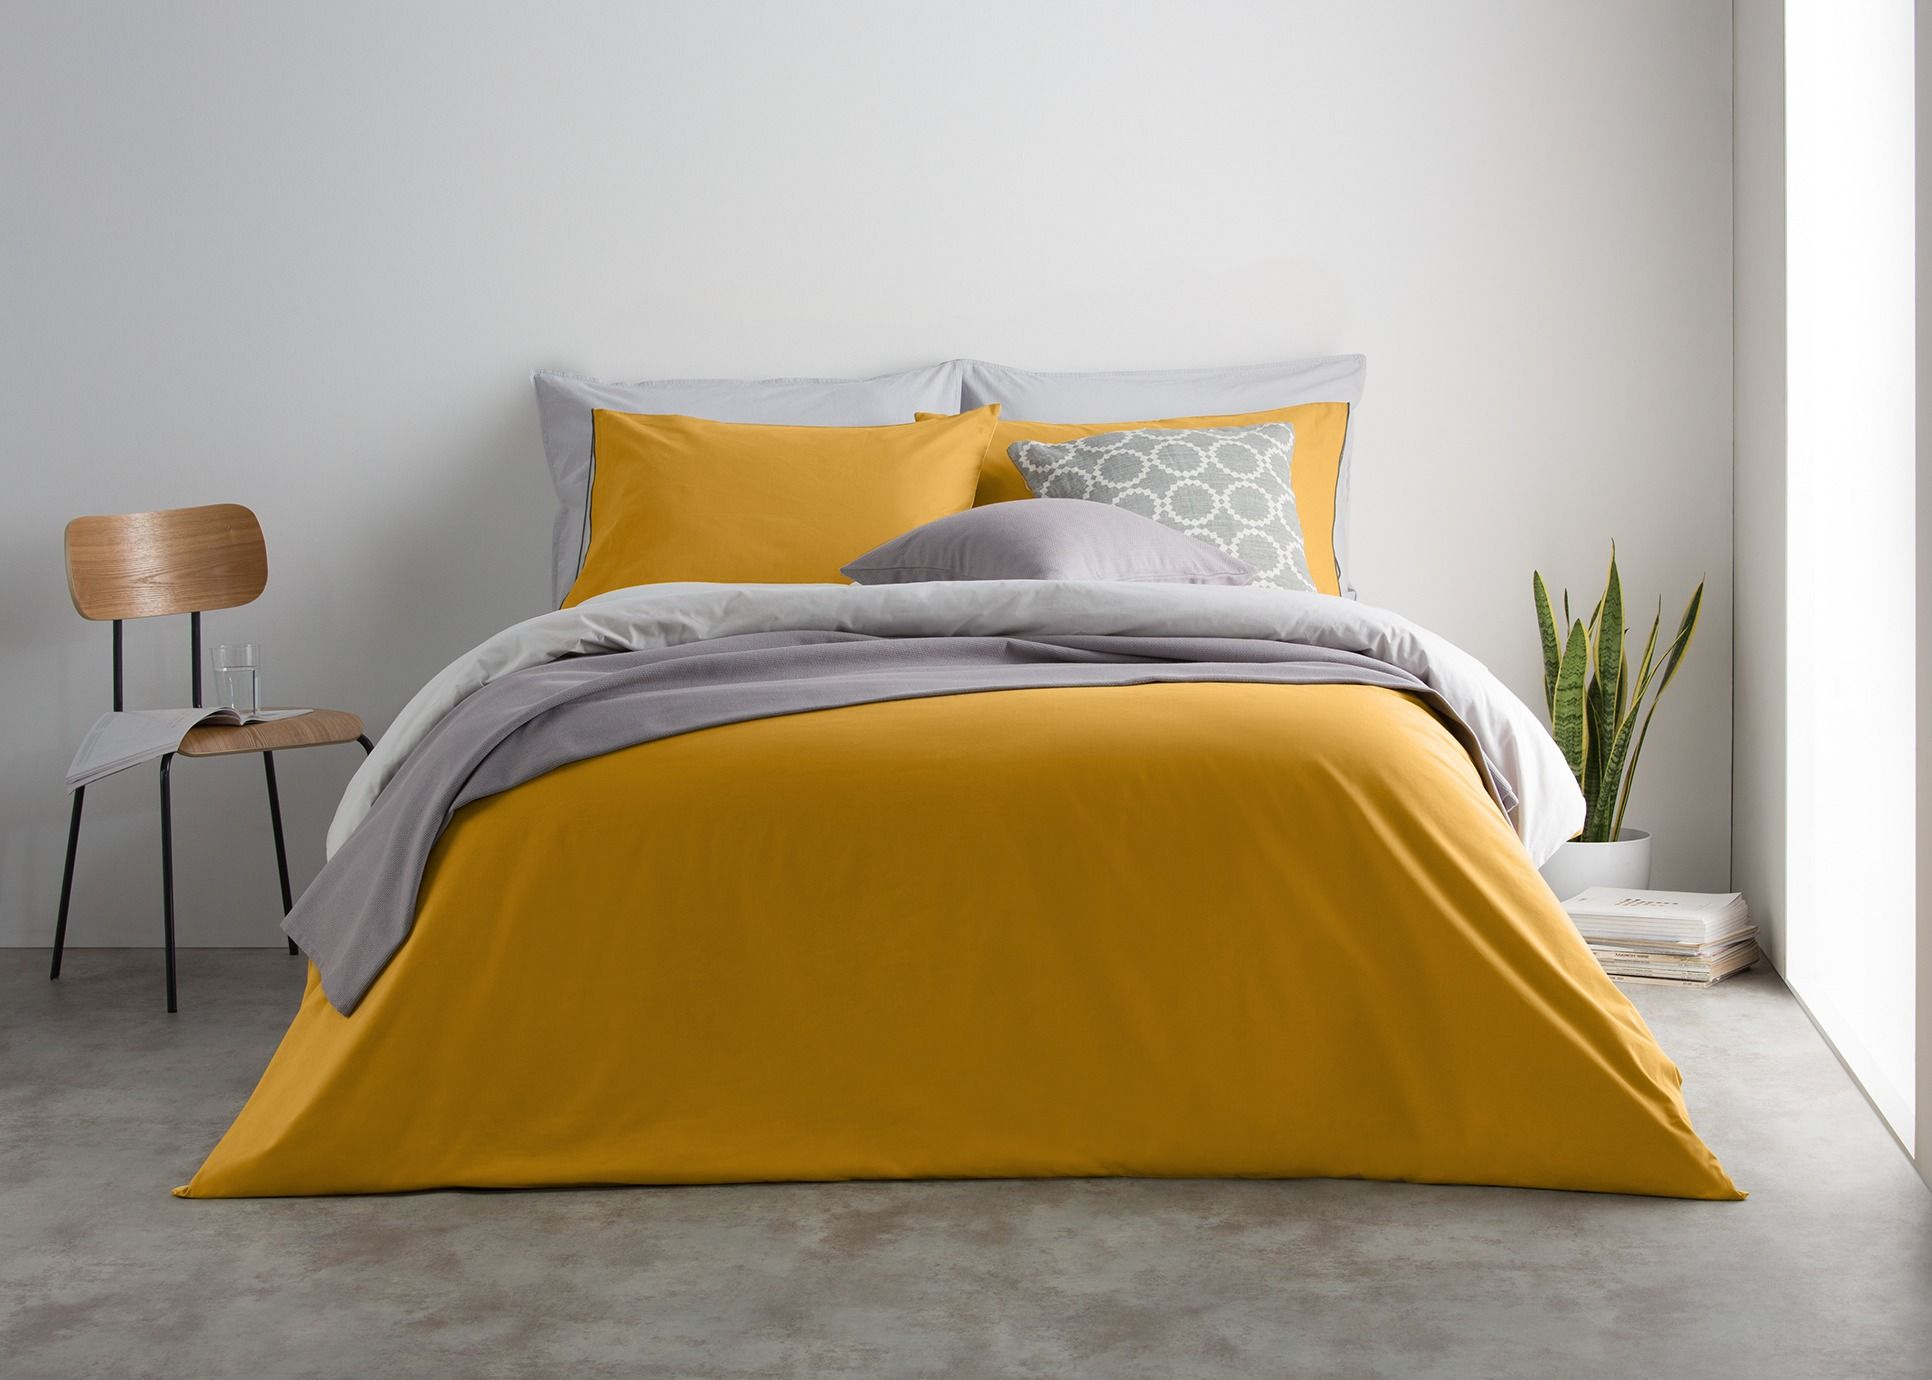 4e4135c9f36b51 Solar 180tc 100% Cotton Reversible Double Bed Set, Mustard/Mist Grey from  Made